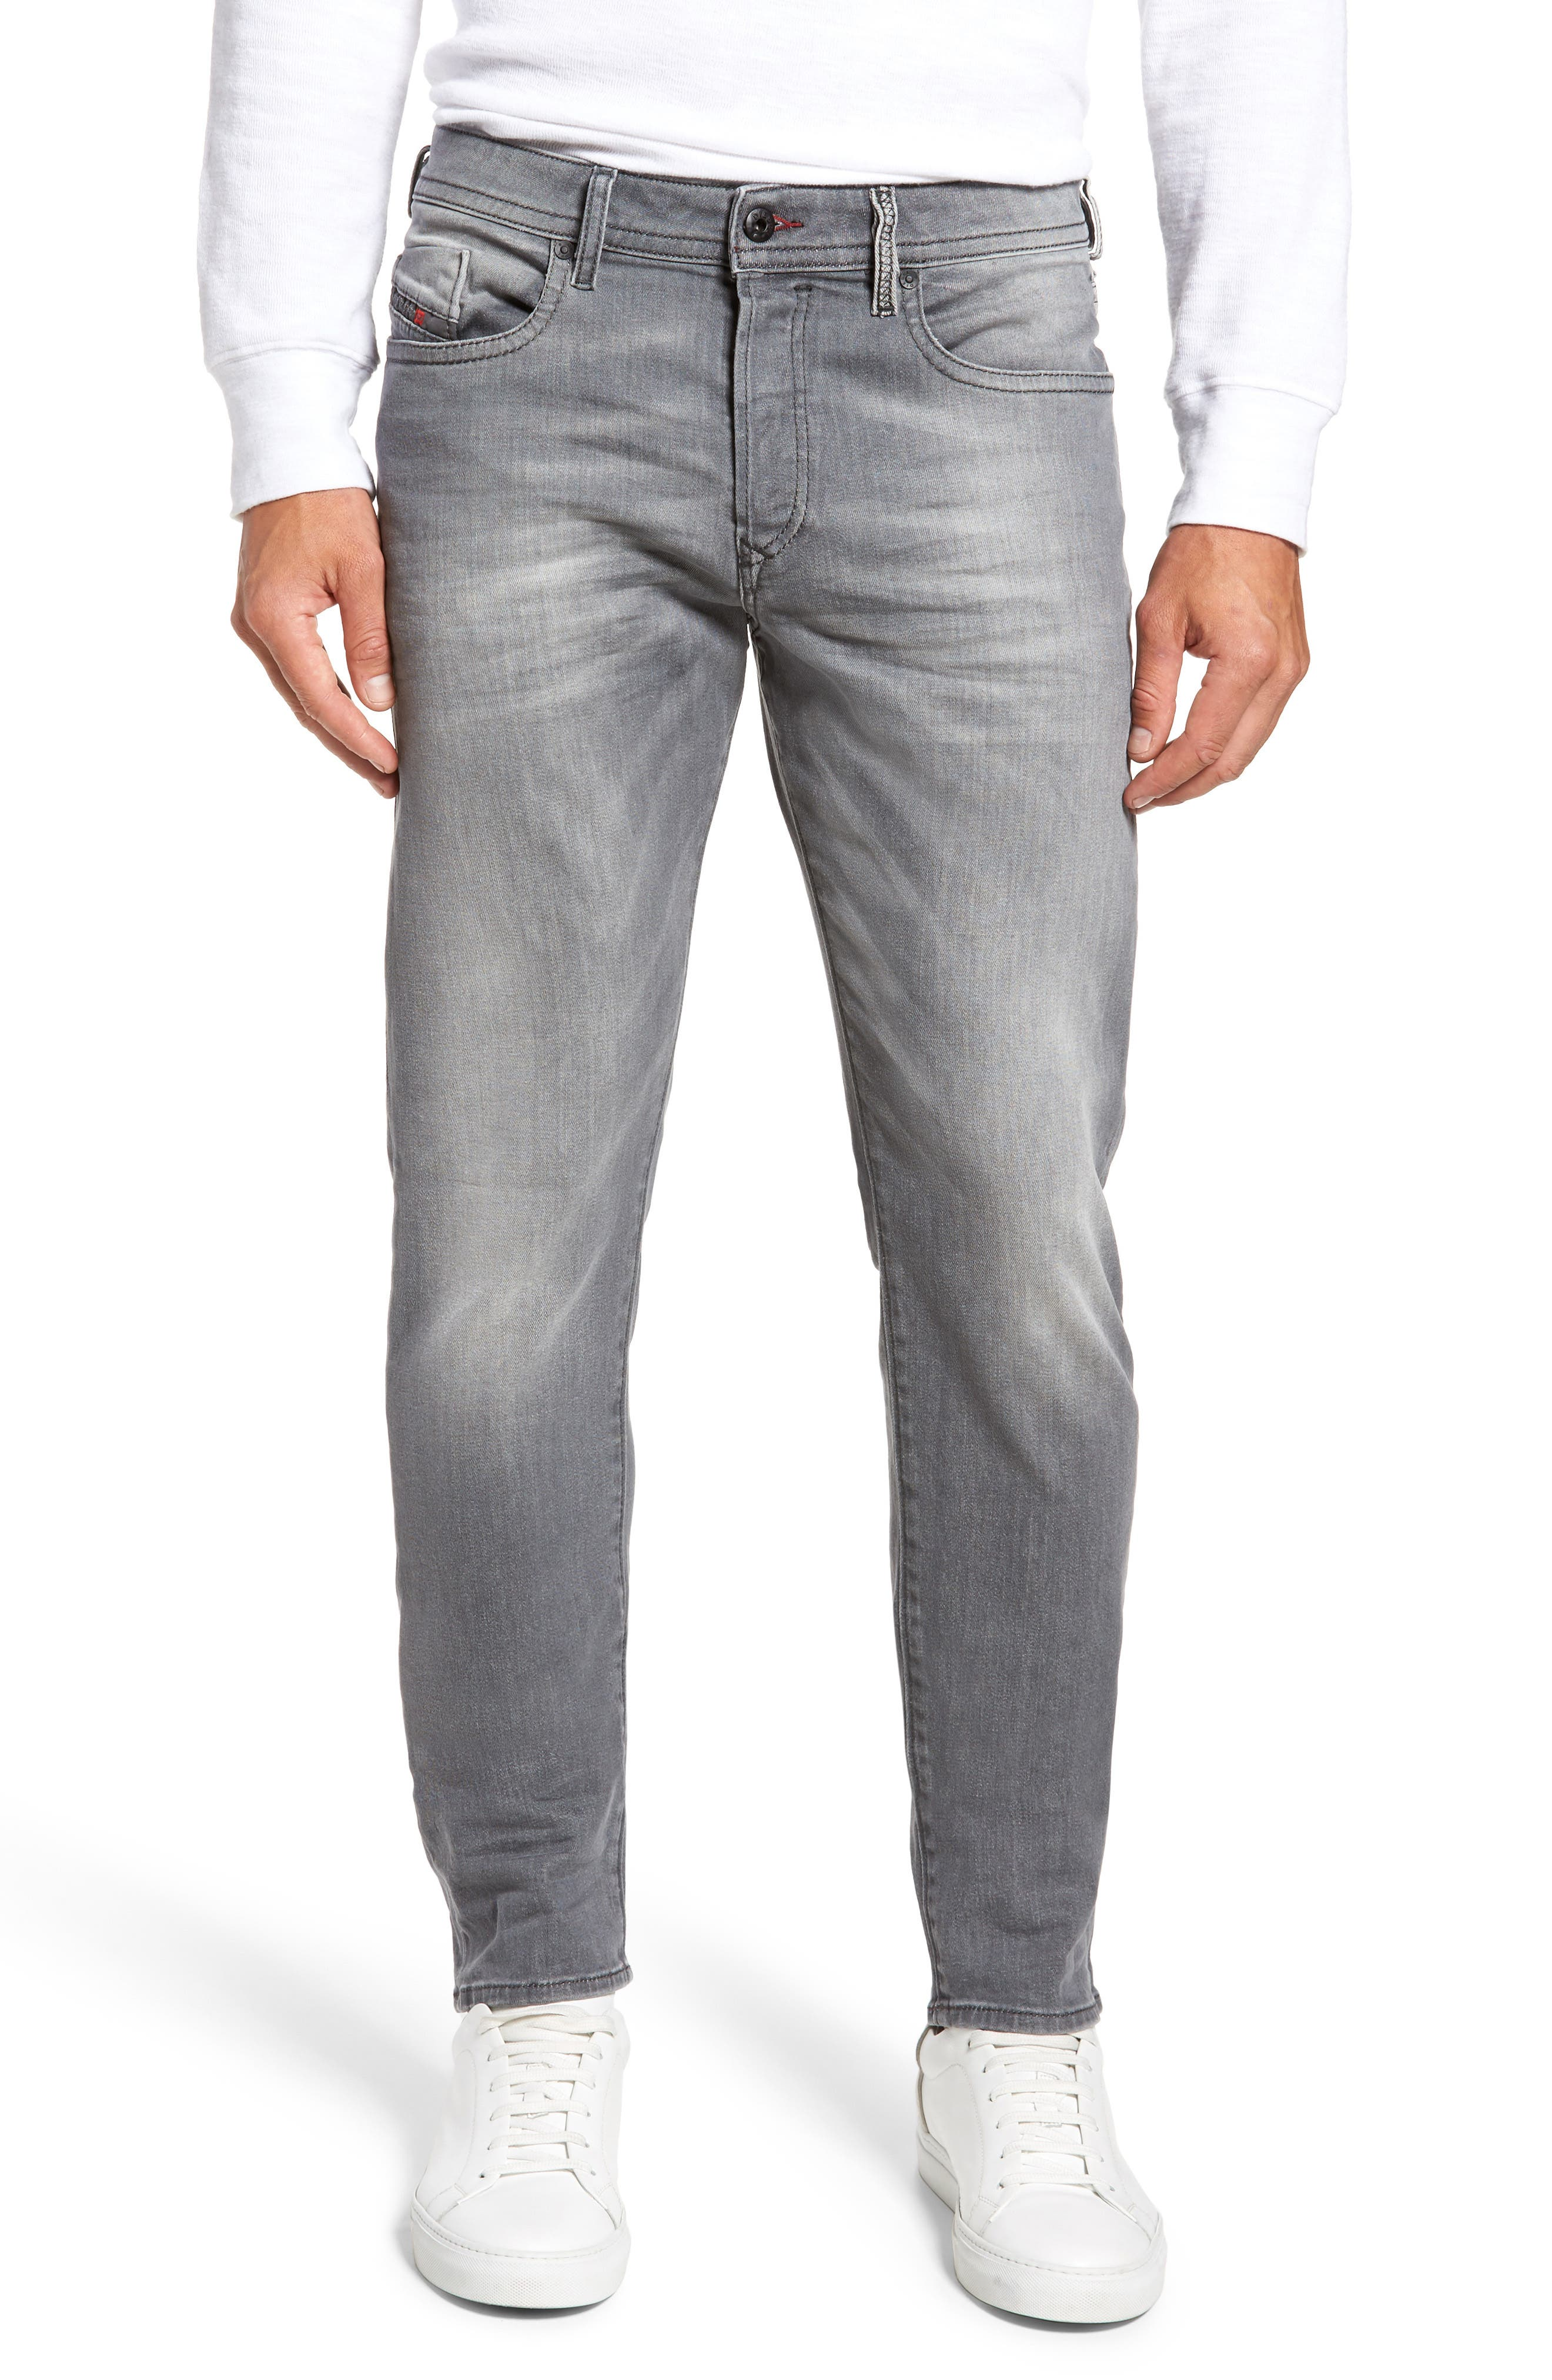 Buster Slim Straight Leg Jeans,                         Main,                         color, 084Hp